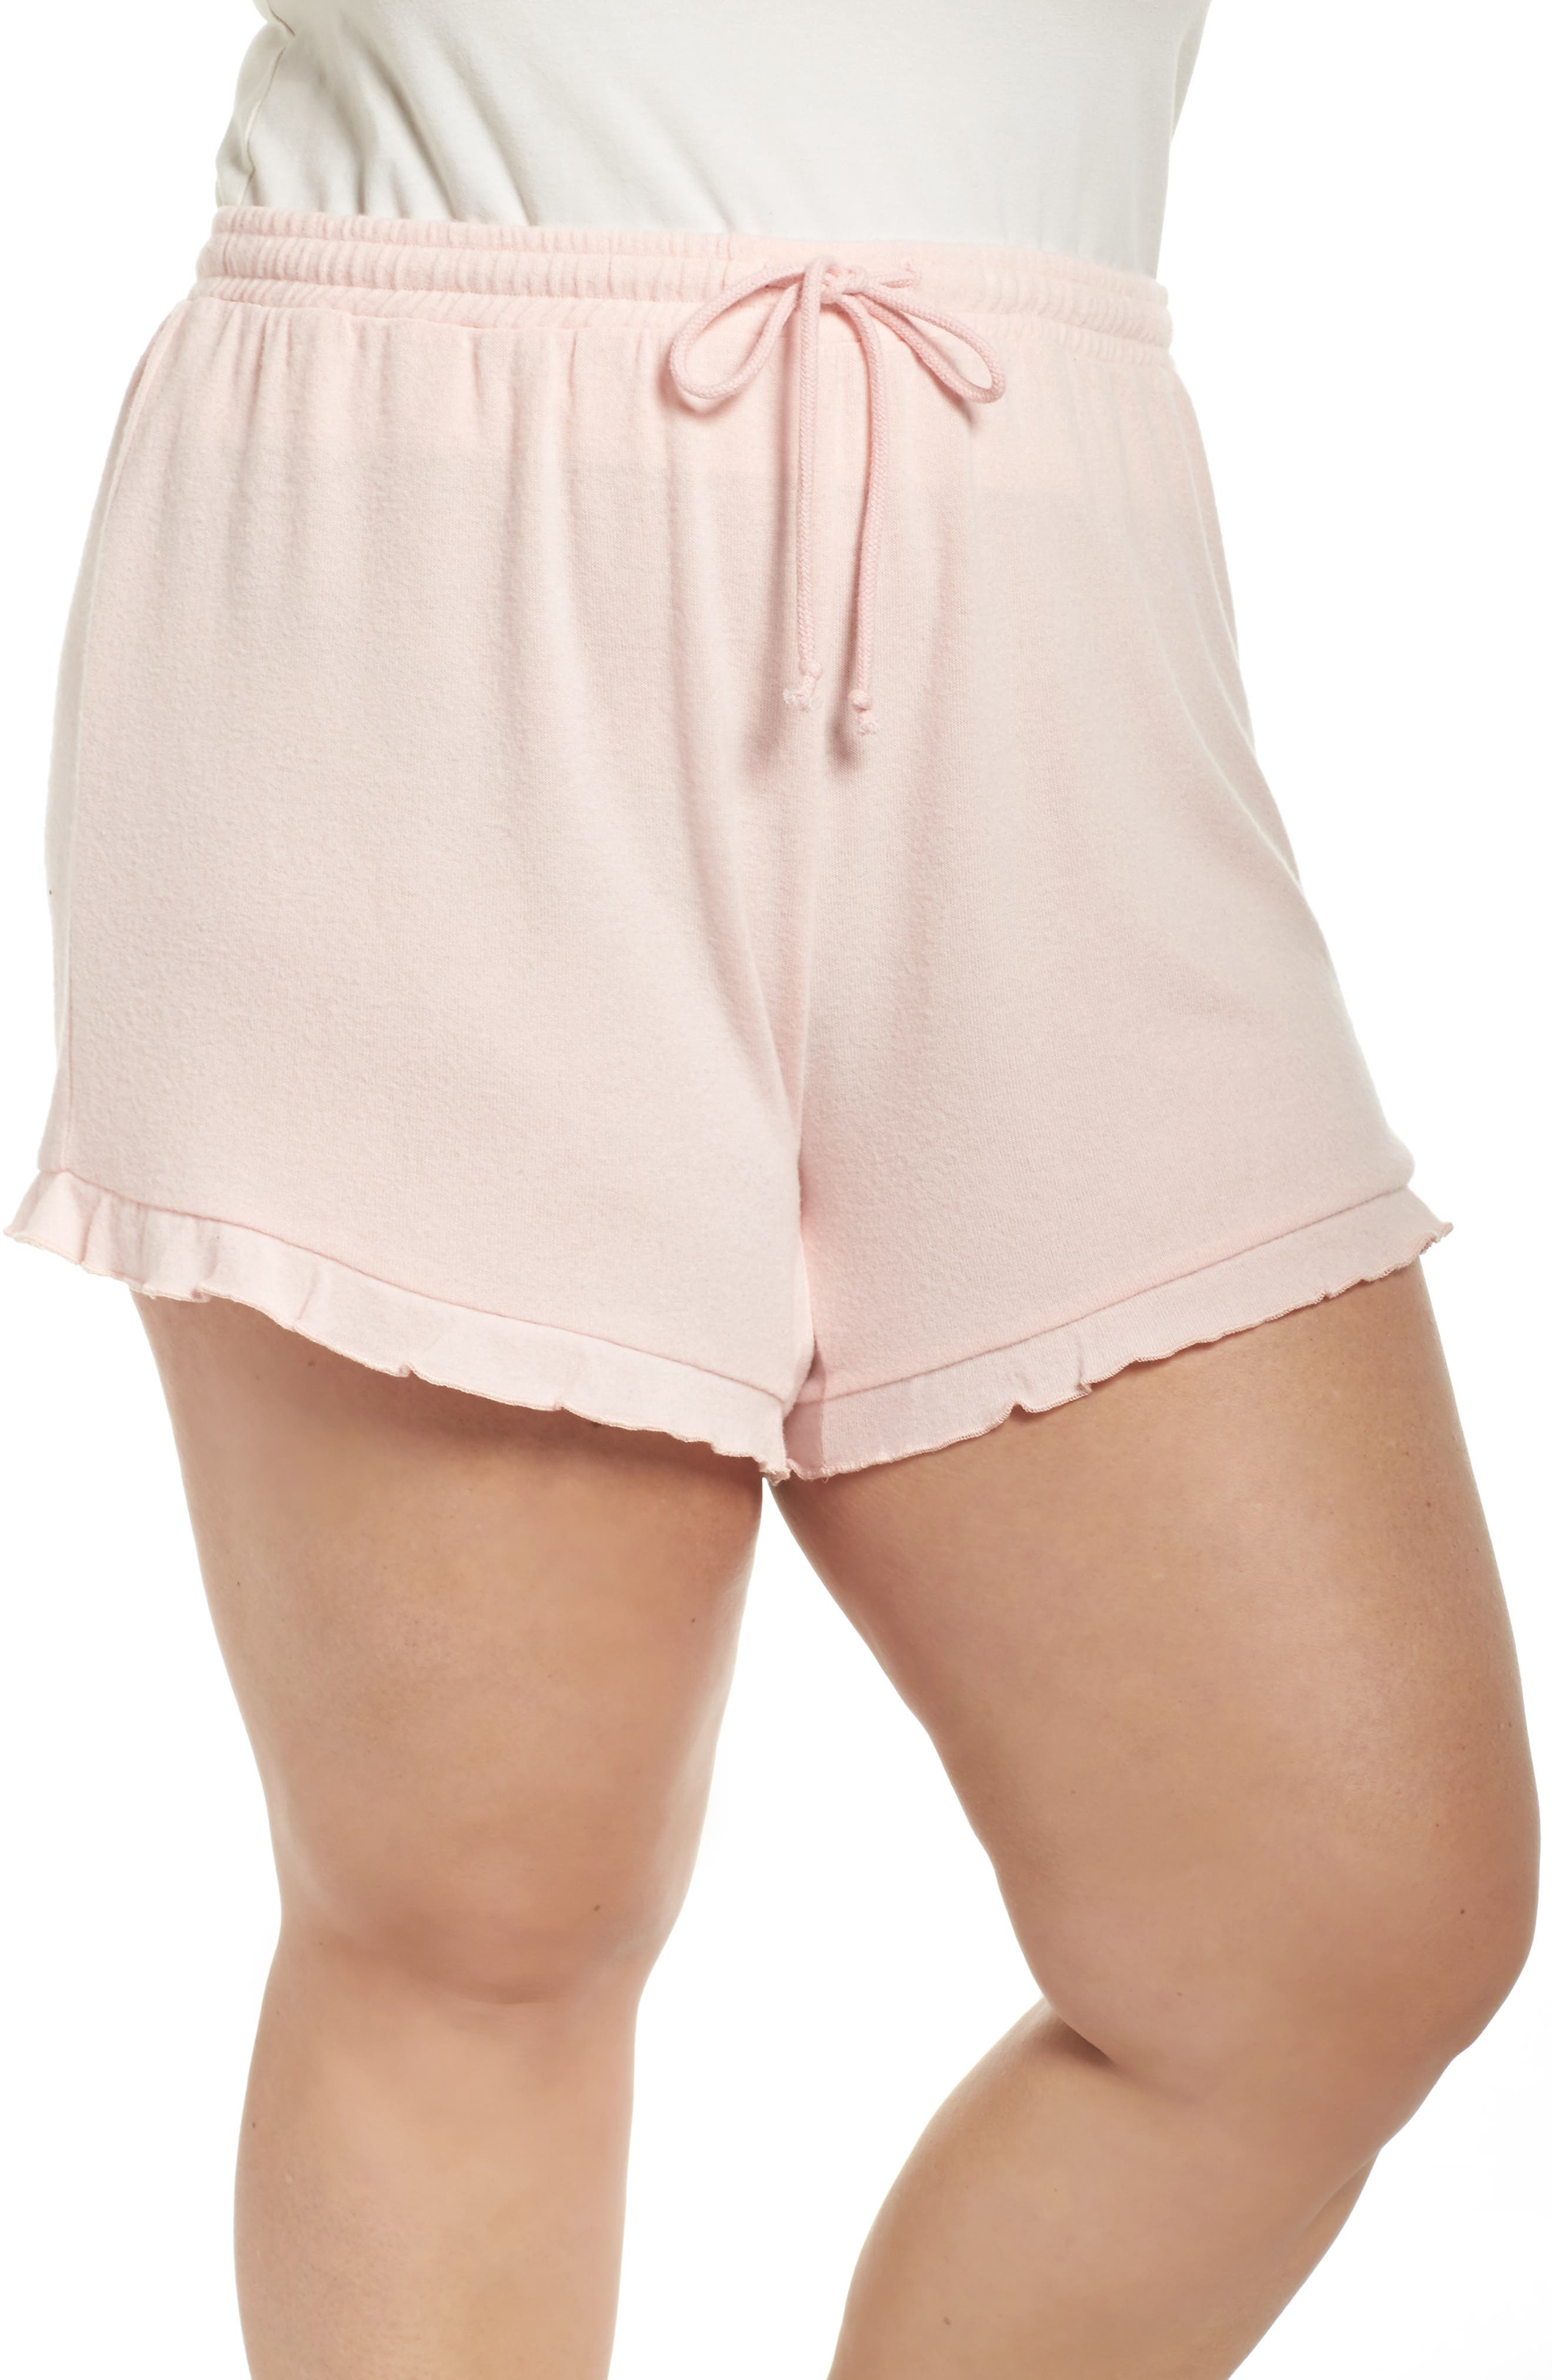 Ruffle Lounge Shorts,                             Main thumbnail 1, color,